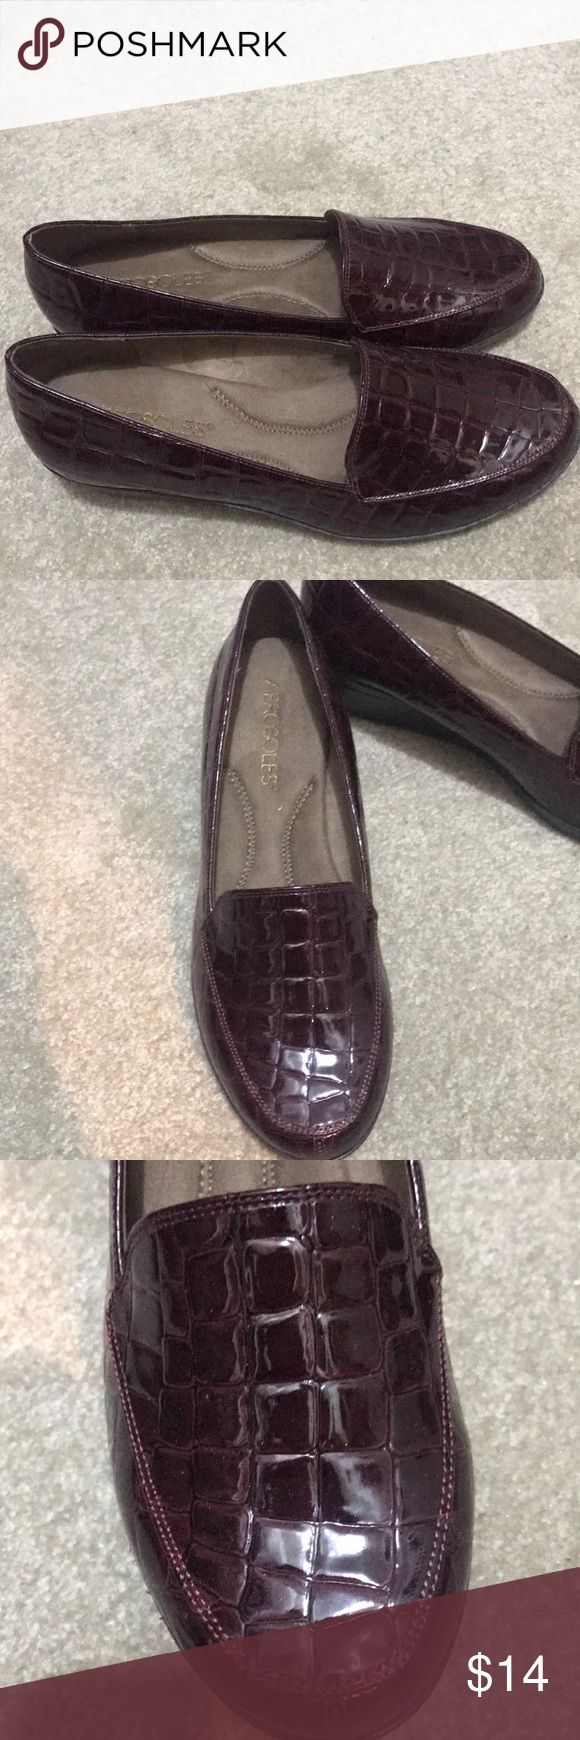 NWOT Aerosoles Size 7 patent leather wedge loafer Burgundy. So pretty. A little wedge gives their loafer a nice look. Never worn!! Size 7 AEROSOLES Shoes Flats & Loafers